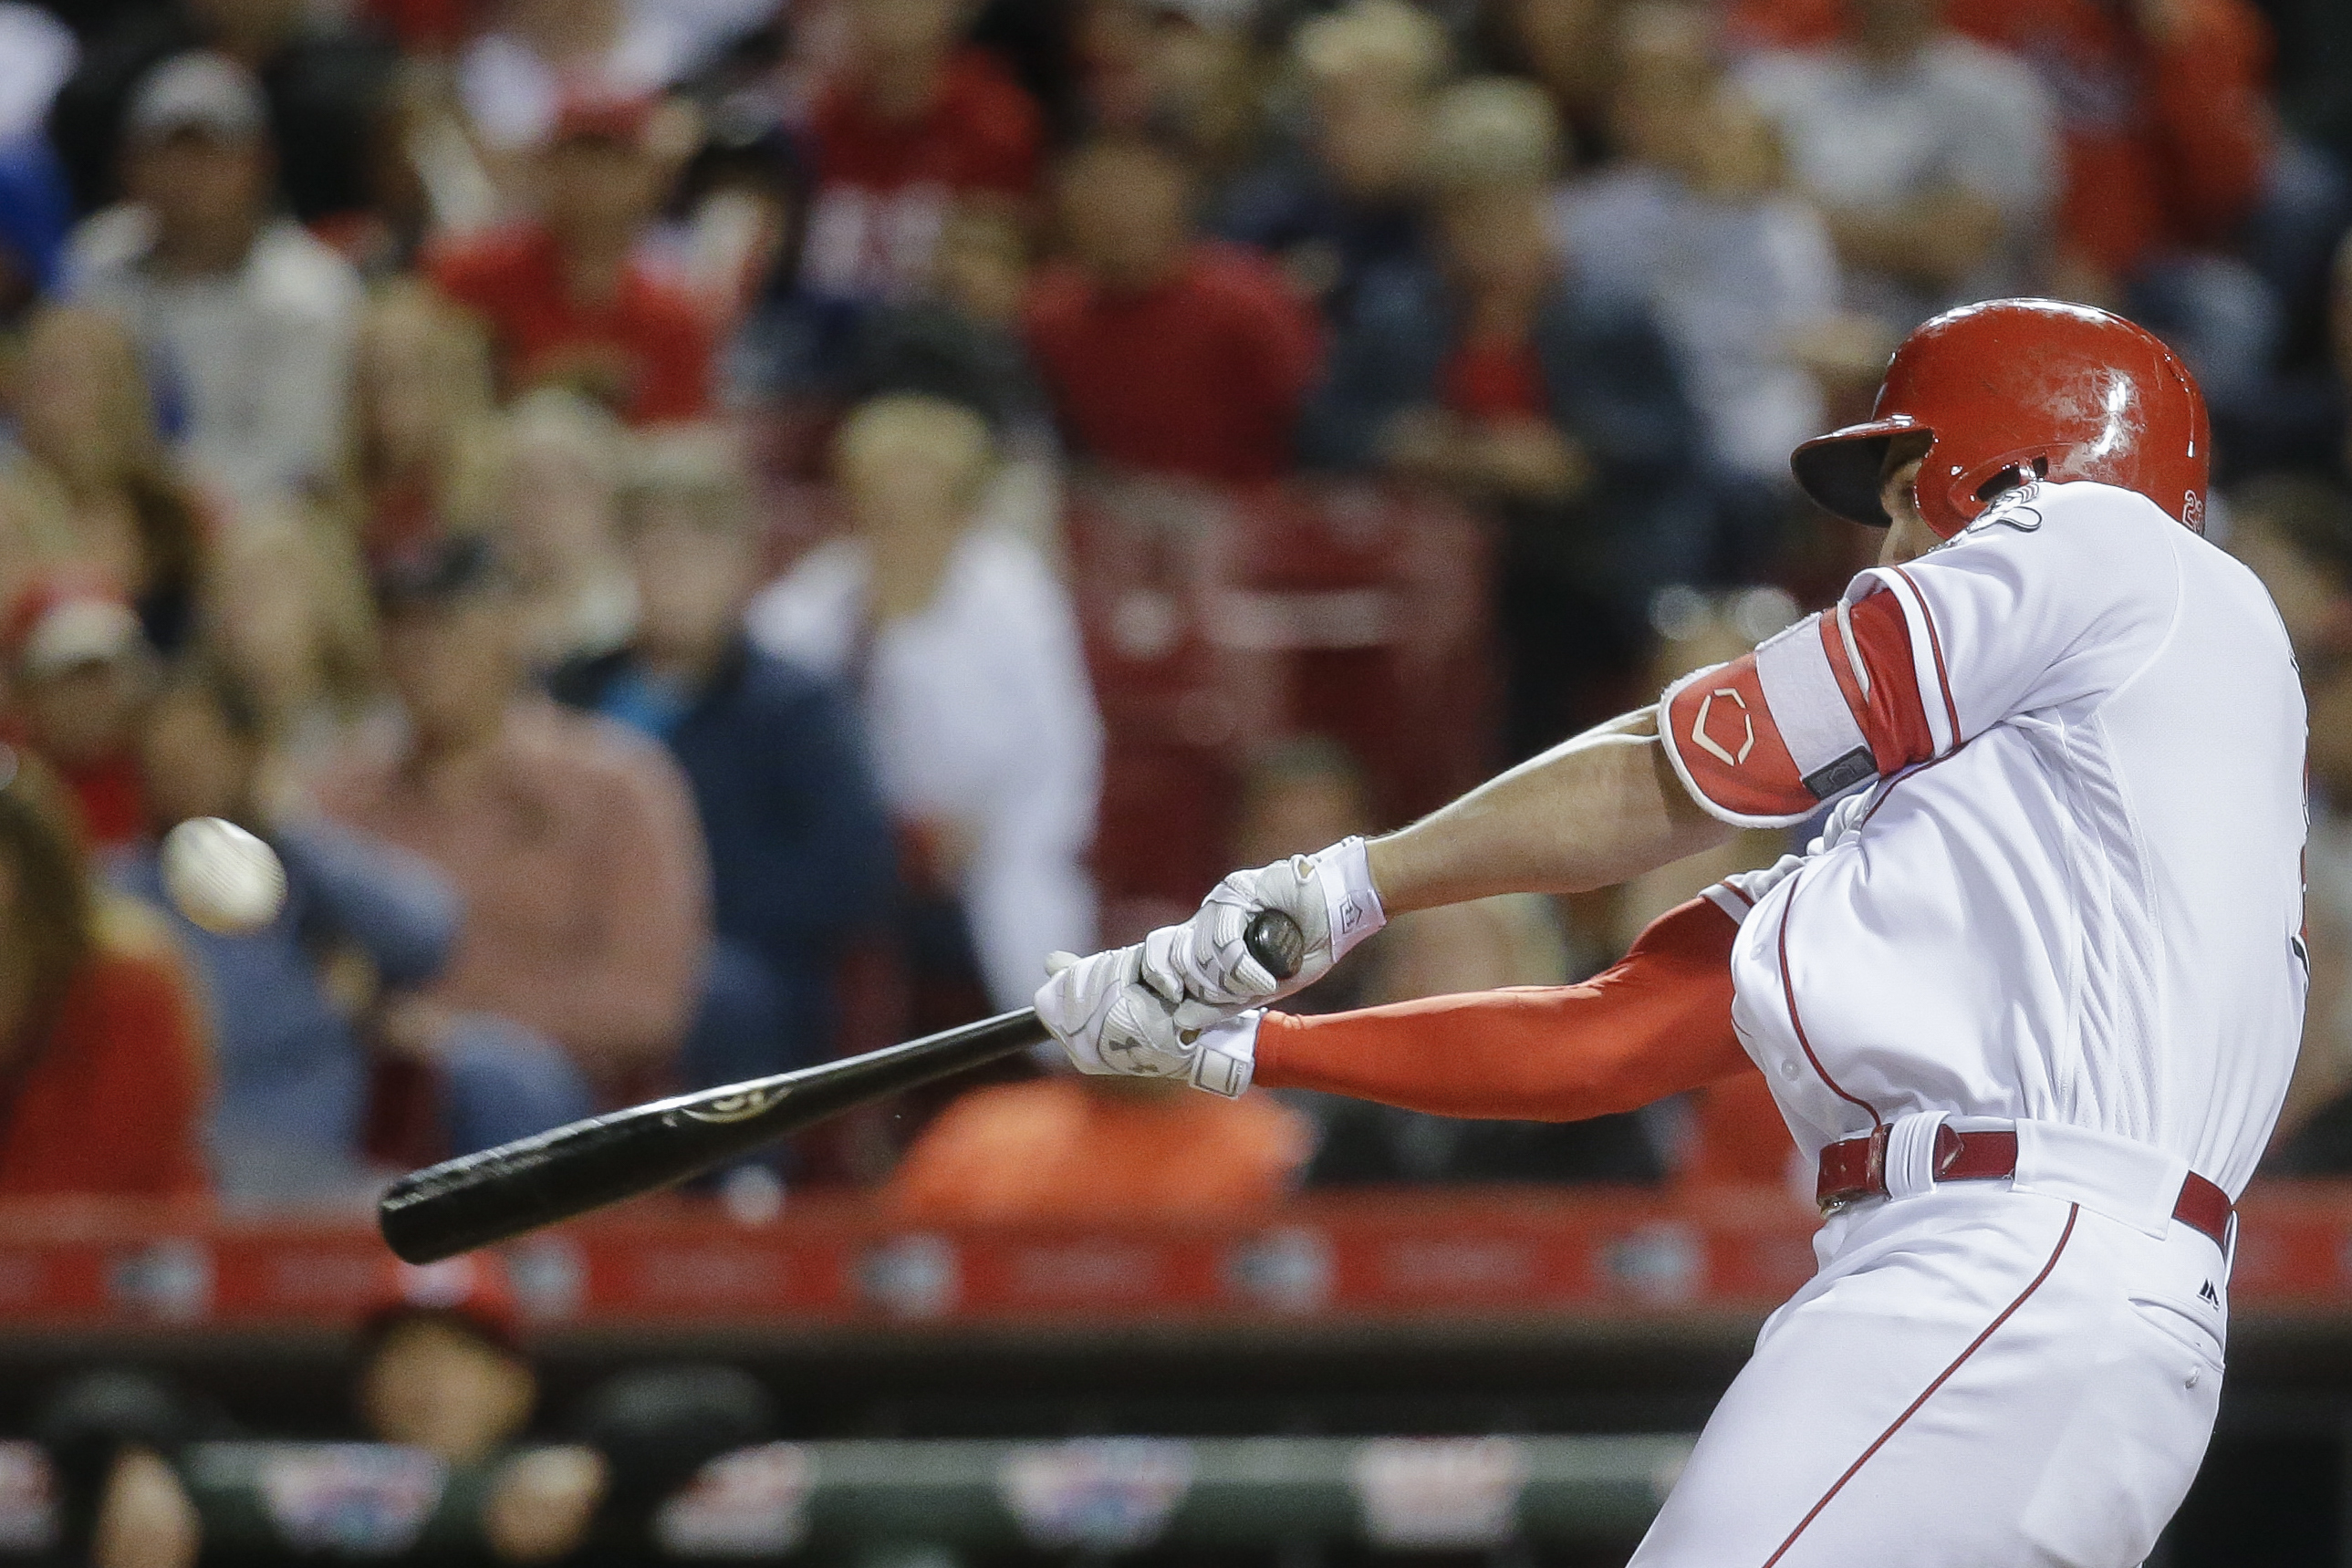 Cincinnati Reds' Adam Duvall hits a three-run home run off Chicago Cubs relief pitcher Trevor Cahill in the sixth inning of a baseball game, Saturday, April 23, 2016, in Cincinnati. (AP Photo/John Minchillo)